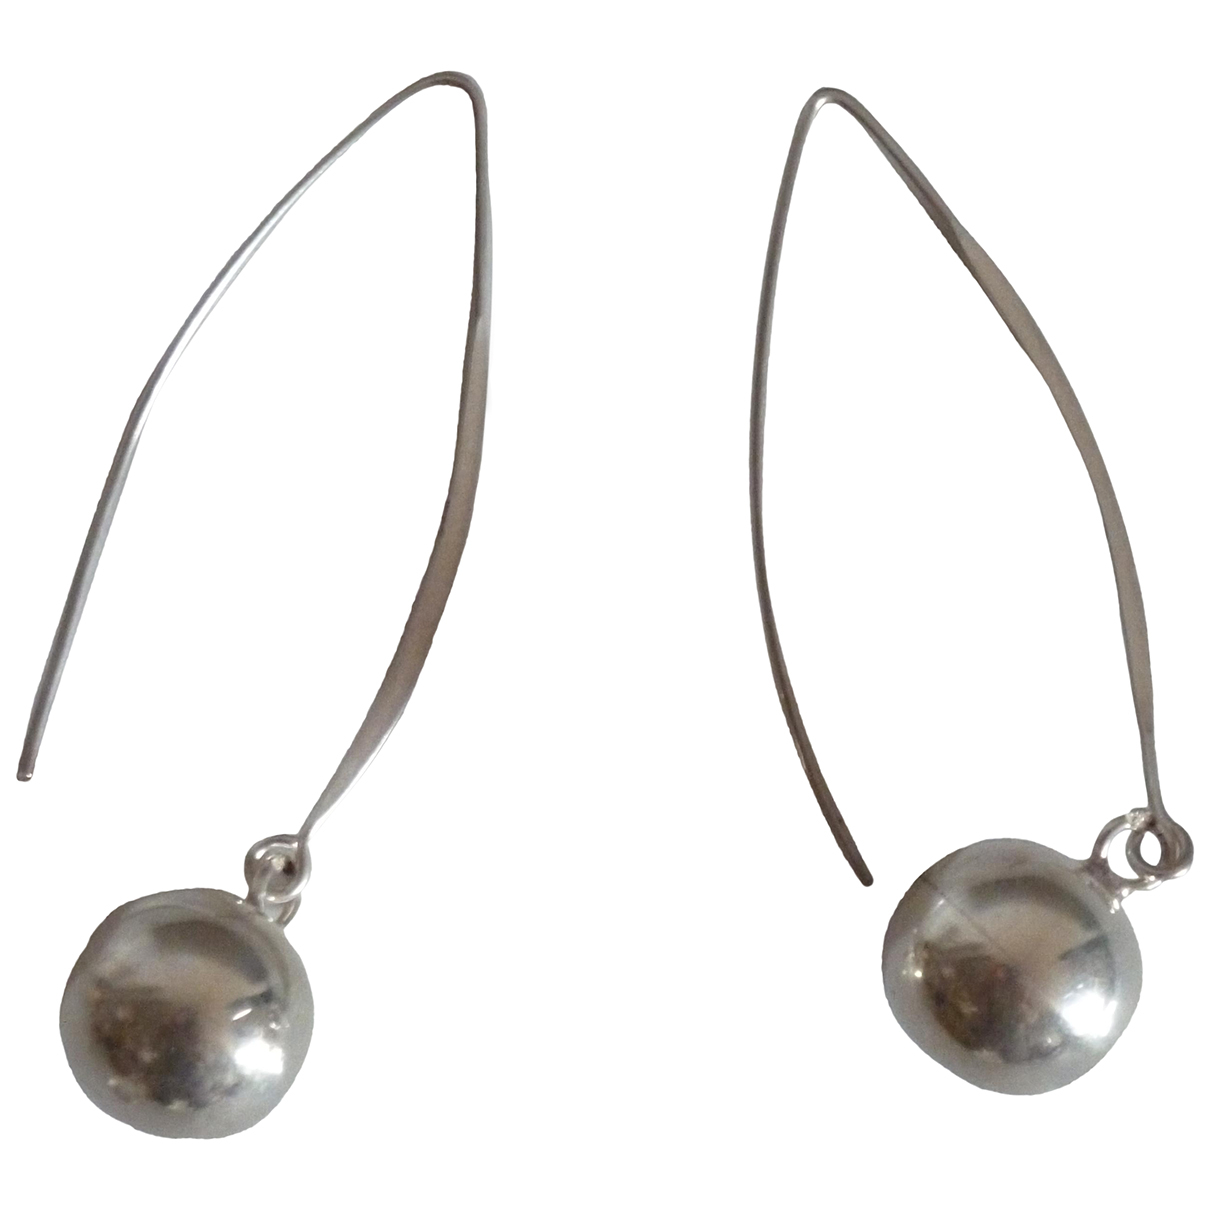 Non Signé / Unsigned Dormeuses Silver Silver Earrings for Women N